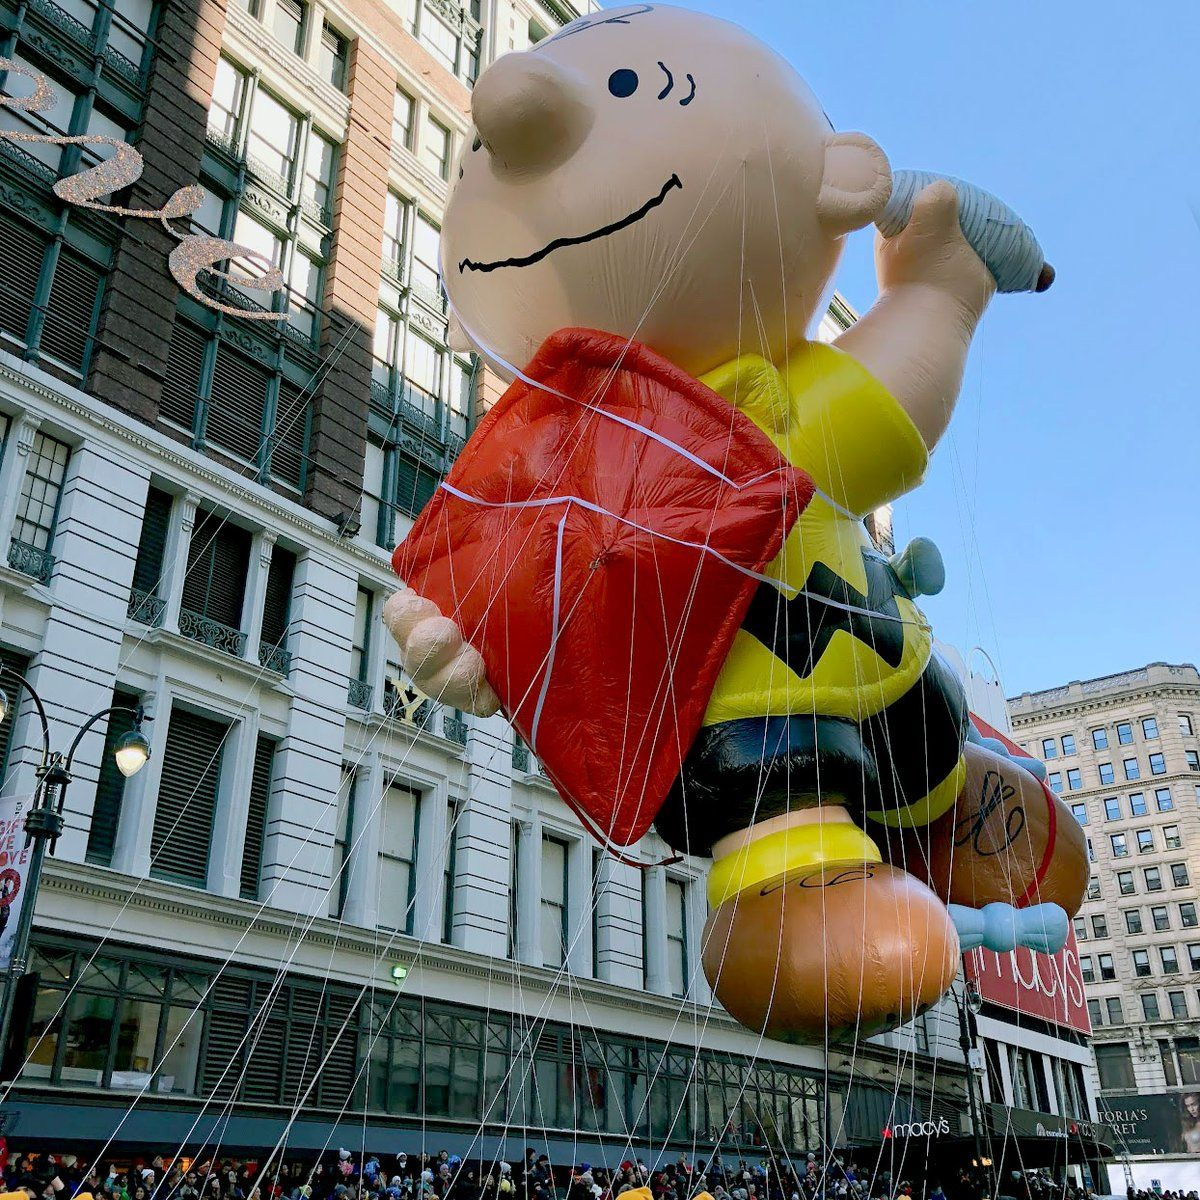 Charlie Brown Balloon 2017 Macy S Thanksgiving Day Parade Thanksgiving Day Parade Macy S Thanksgiving Day Parade Macy S Day Parade